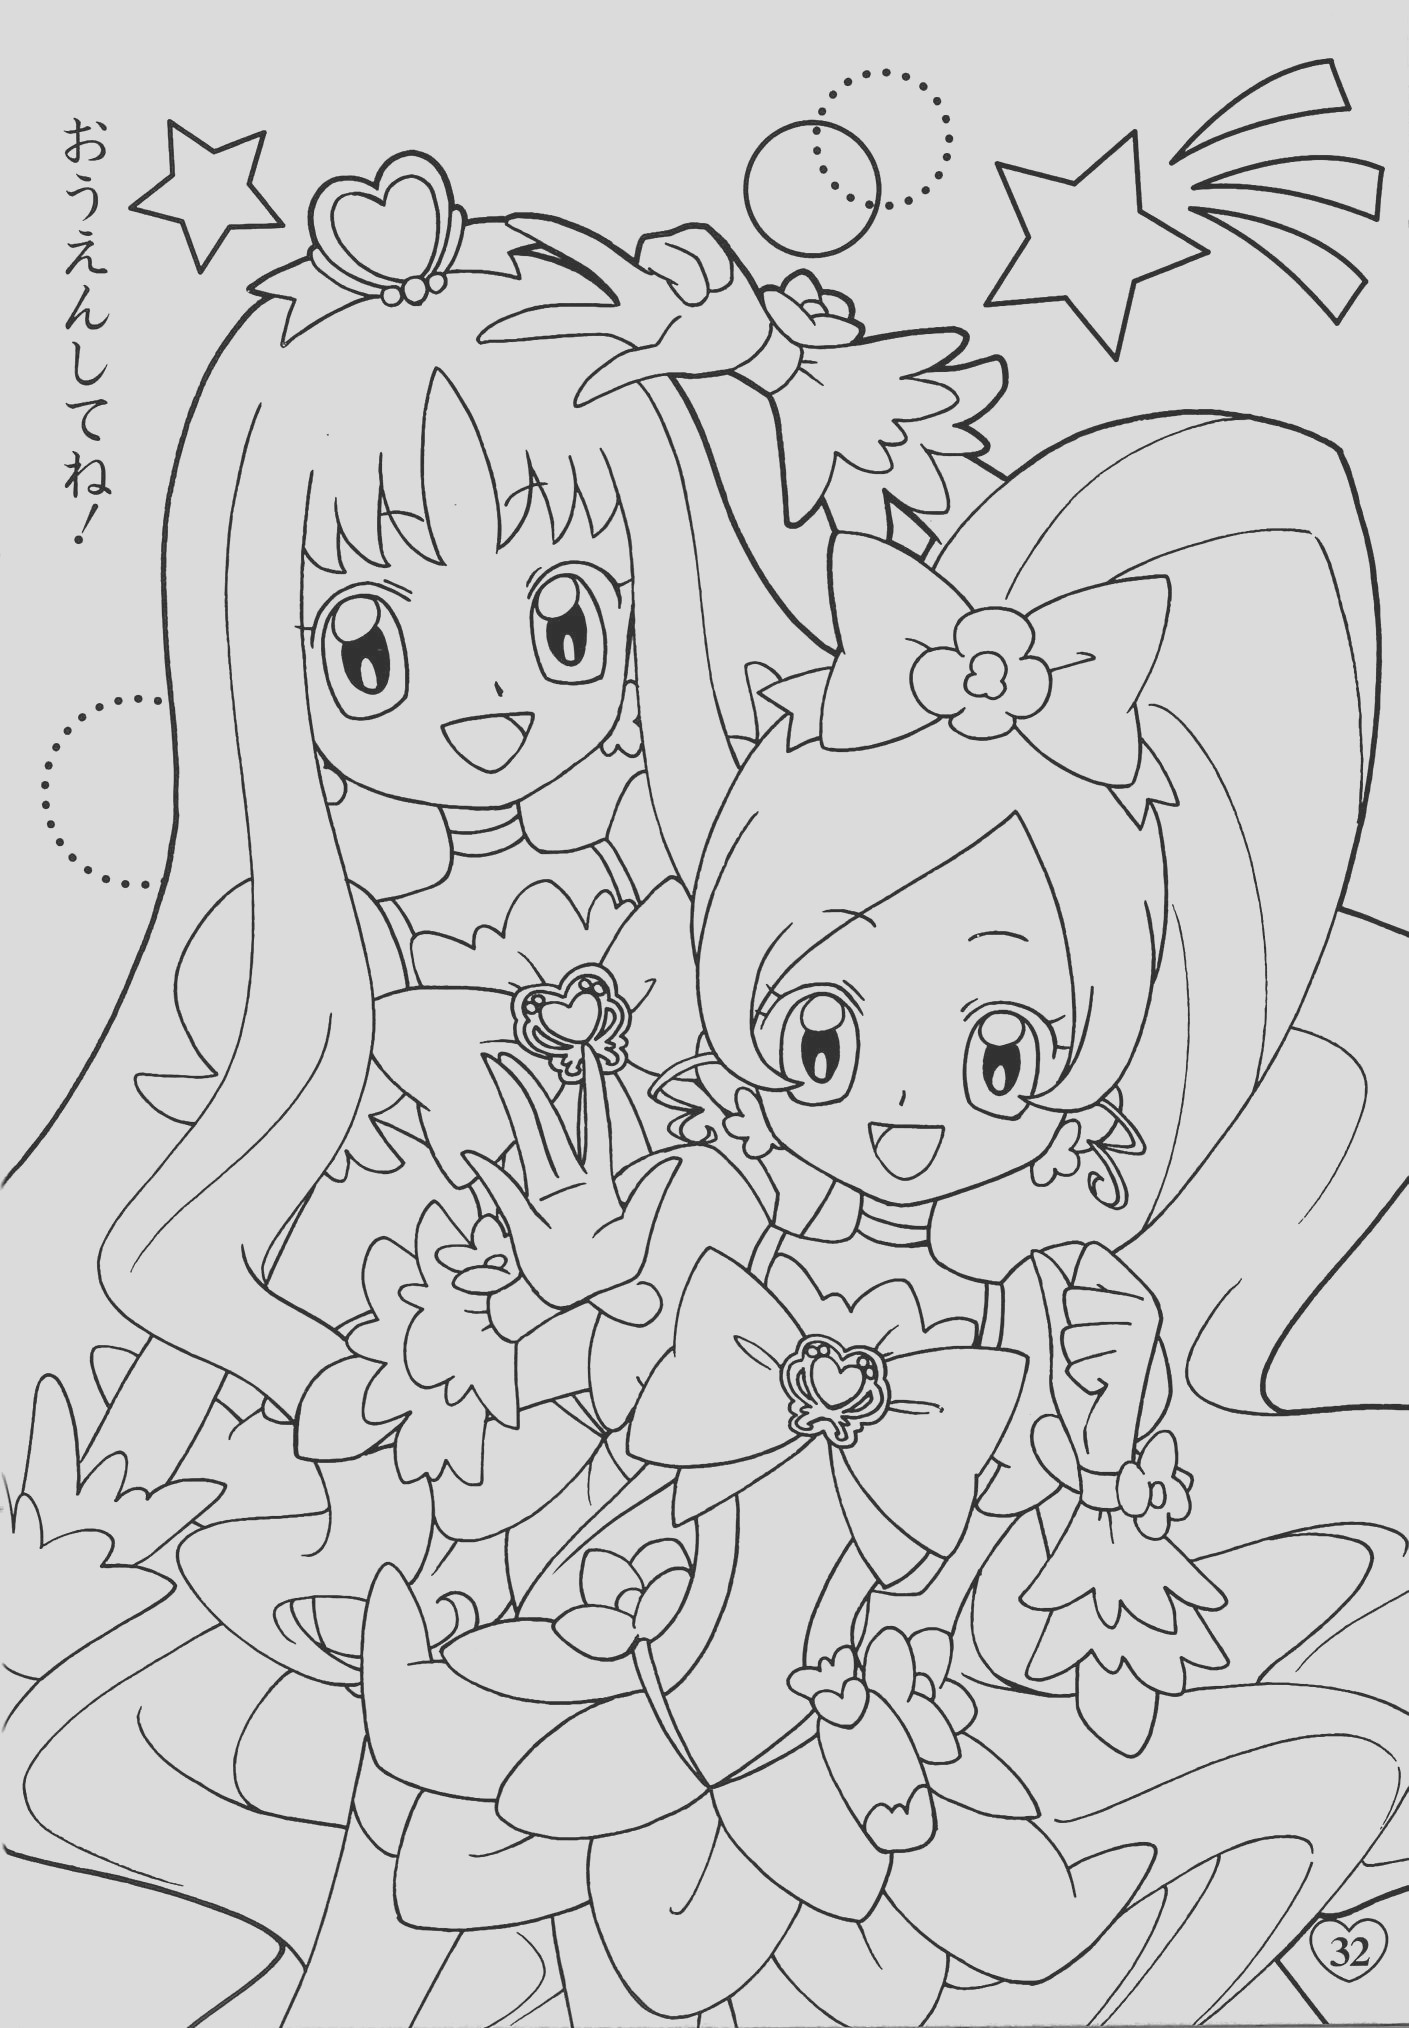 Heartcatch Precure! Coloring Page